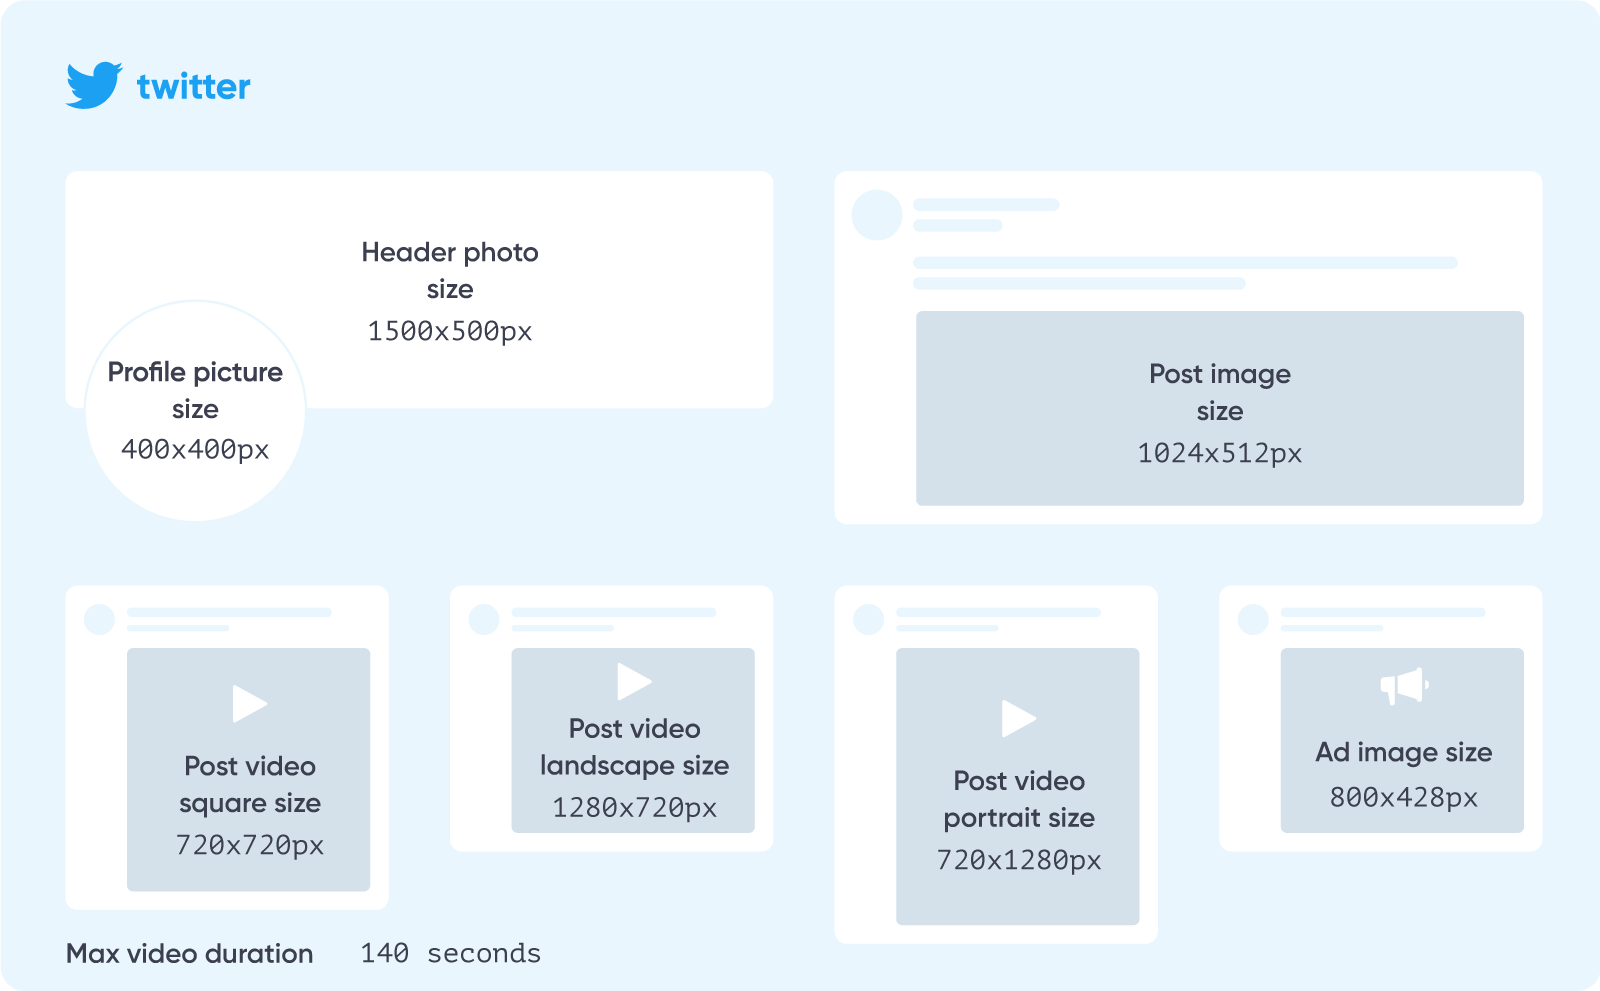 Twitter image size guide